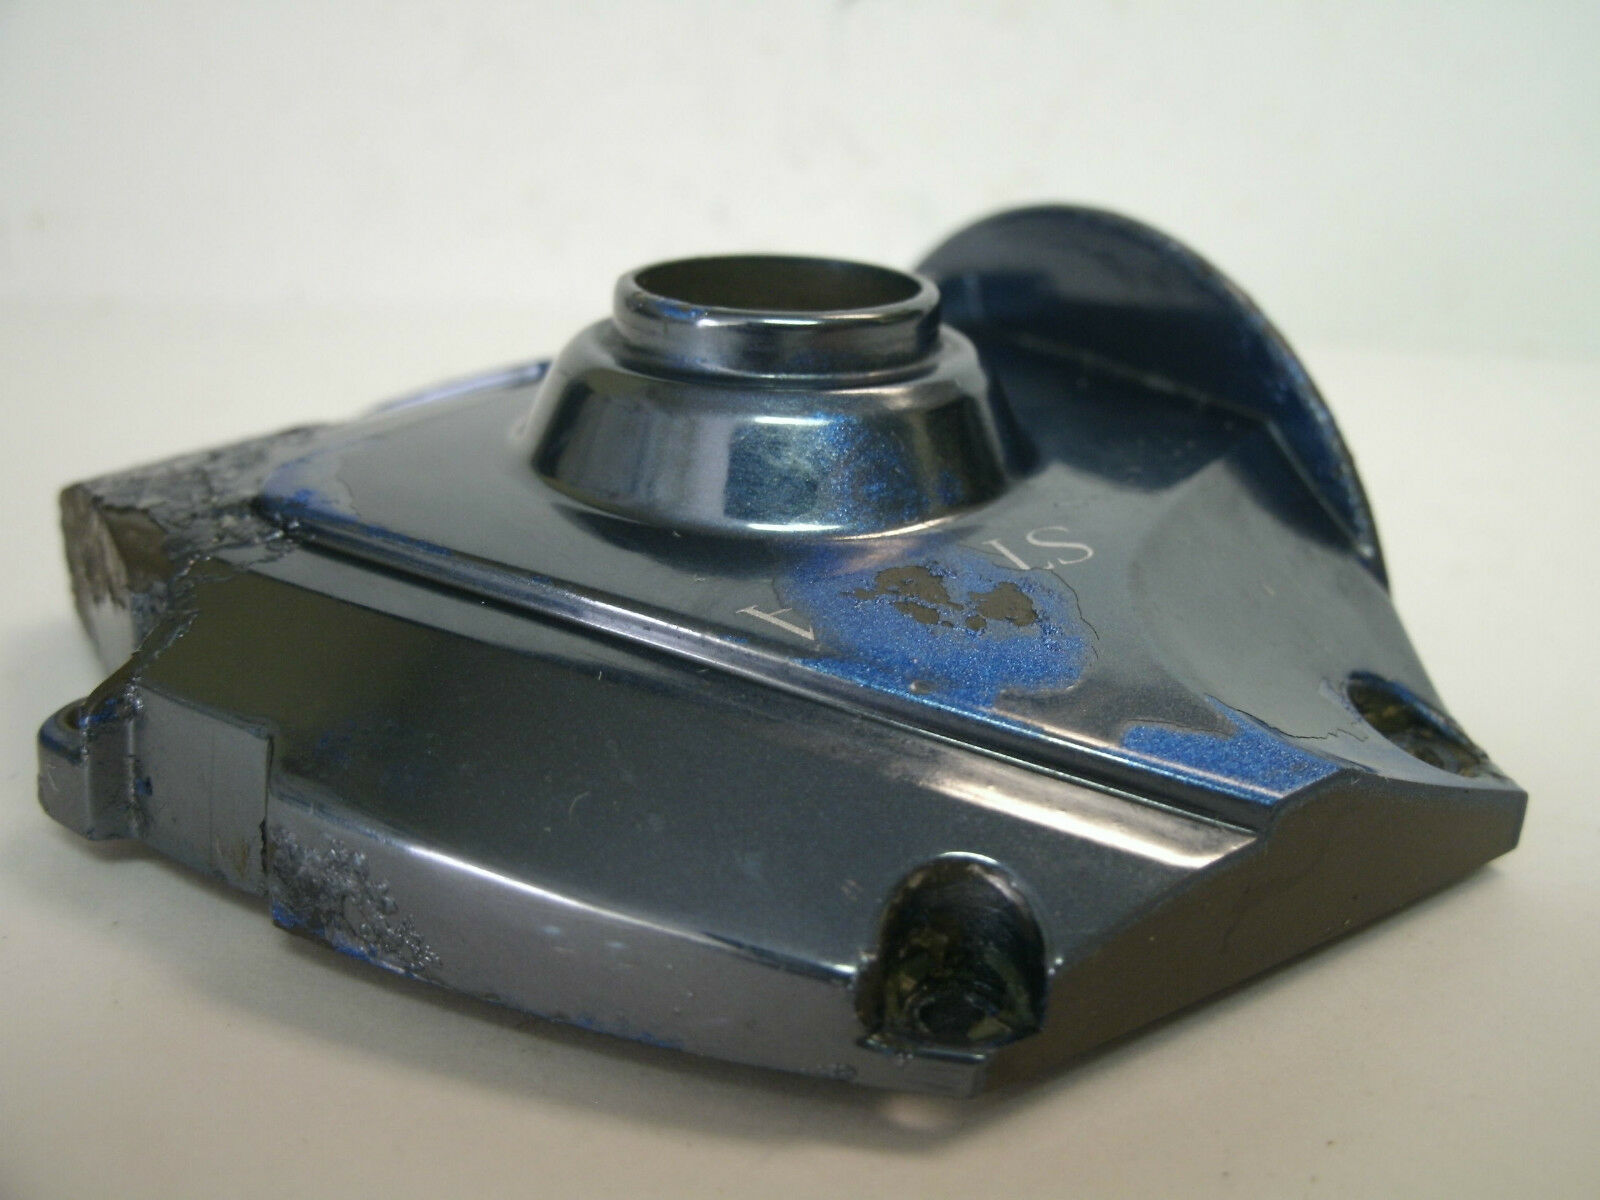 USED - SHIMANO REEL PART Stella 20000 FA Spinning Reel - USED Body Side Cover Corrosion 31b5da